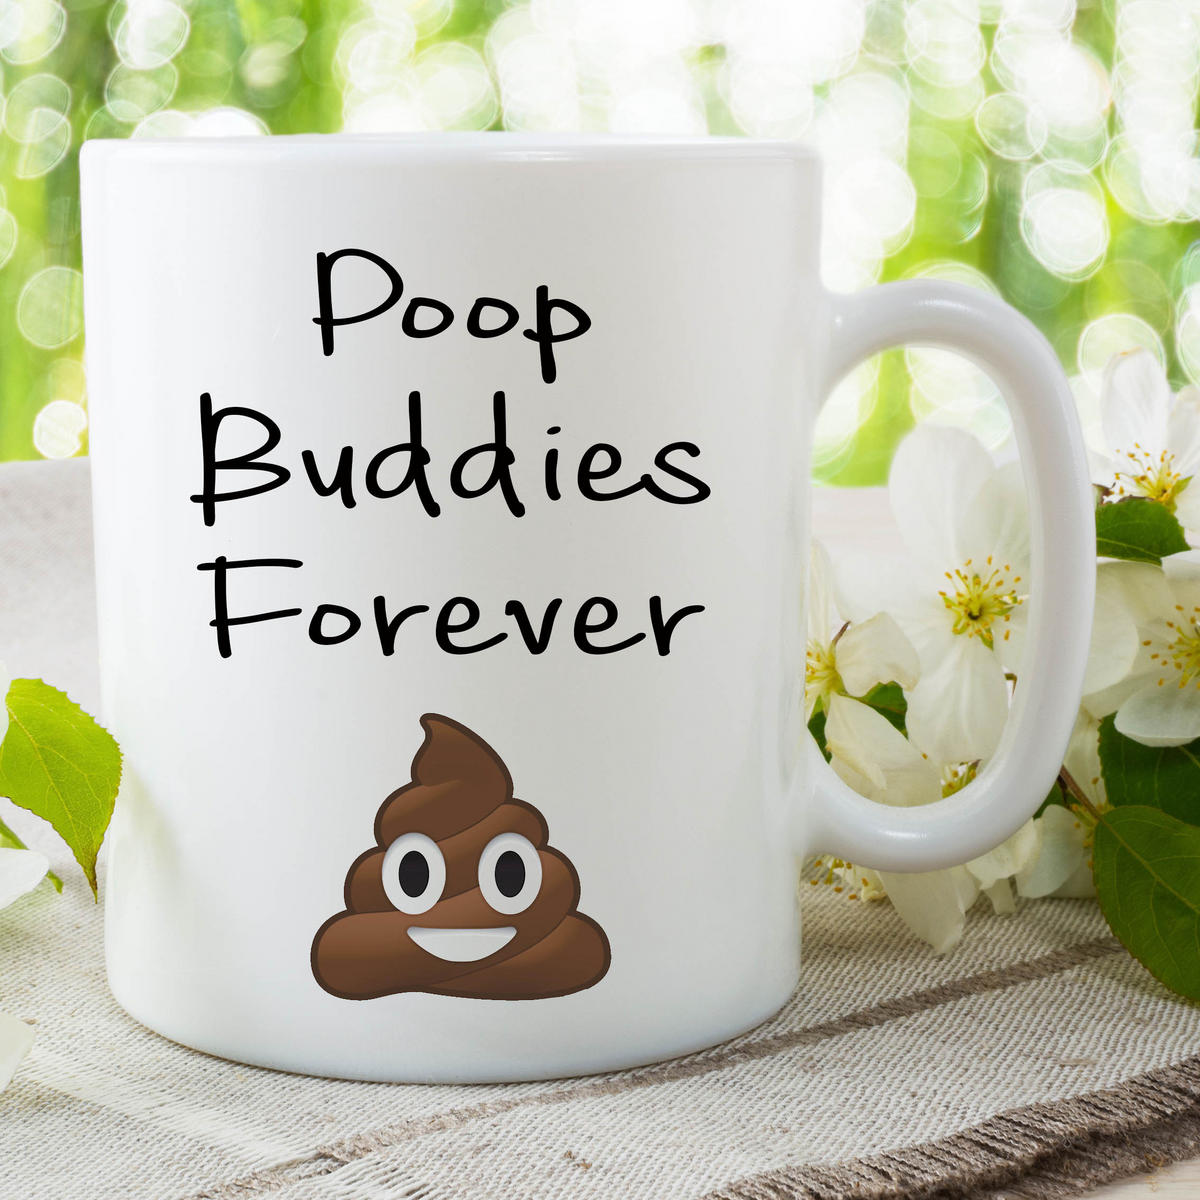 Funny Novelty Poo Mugs Poop Buddies Forever Humour Joke Gifts Cups Fun WSDMUG657